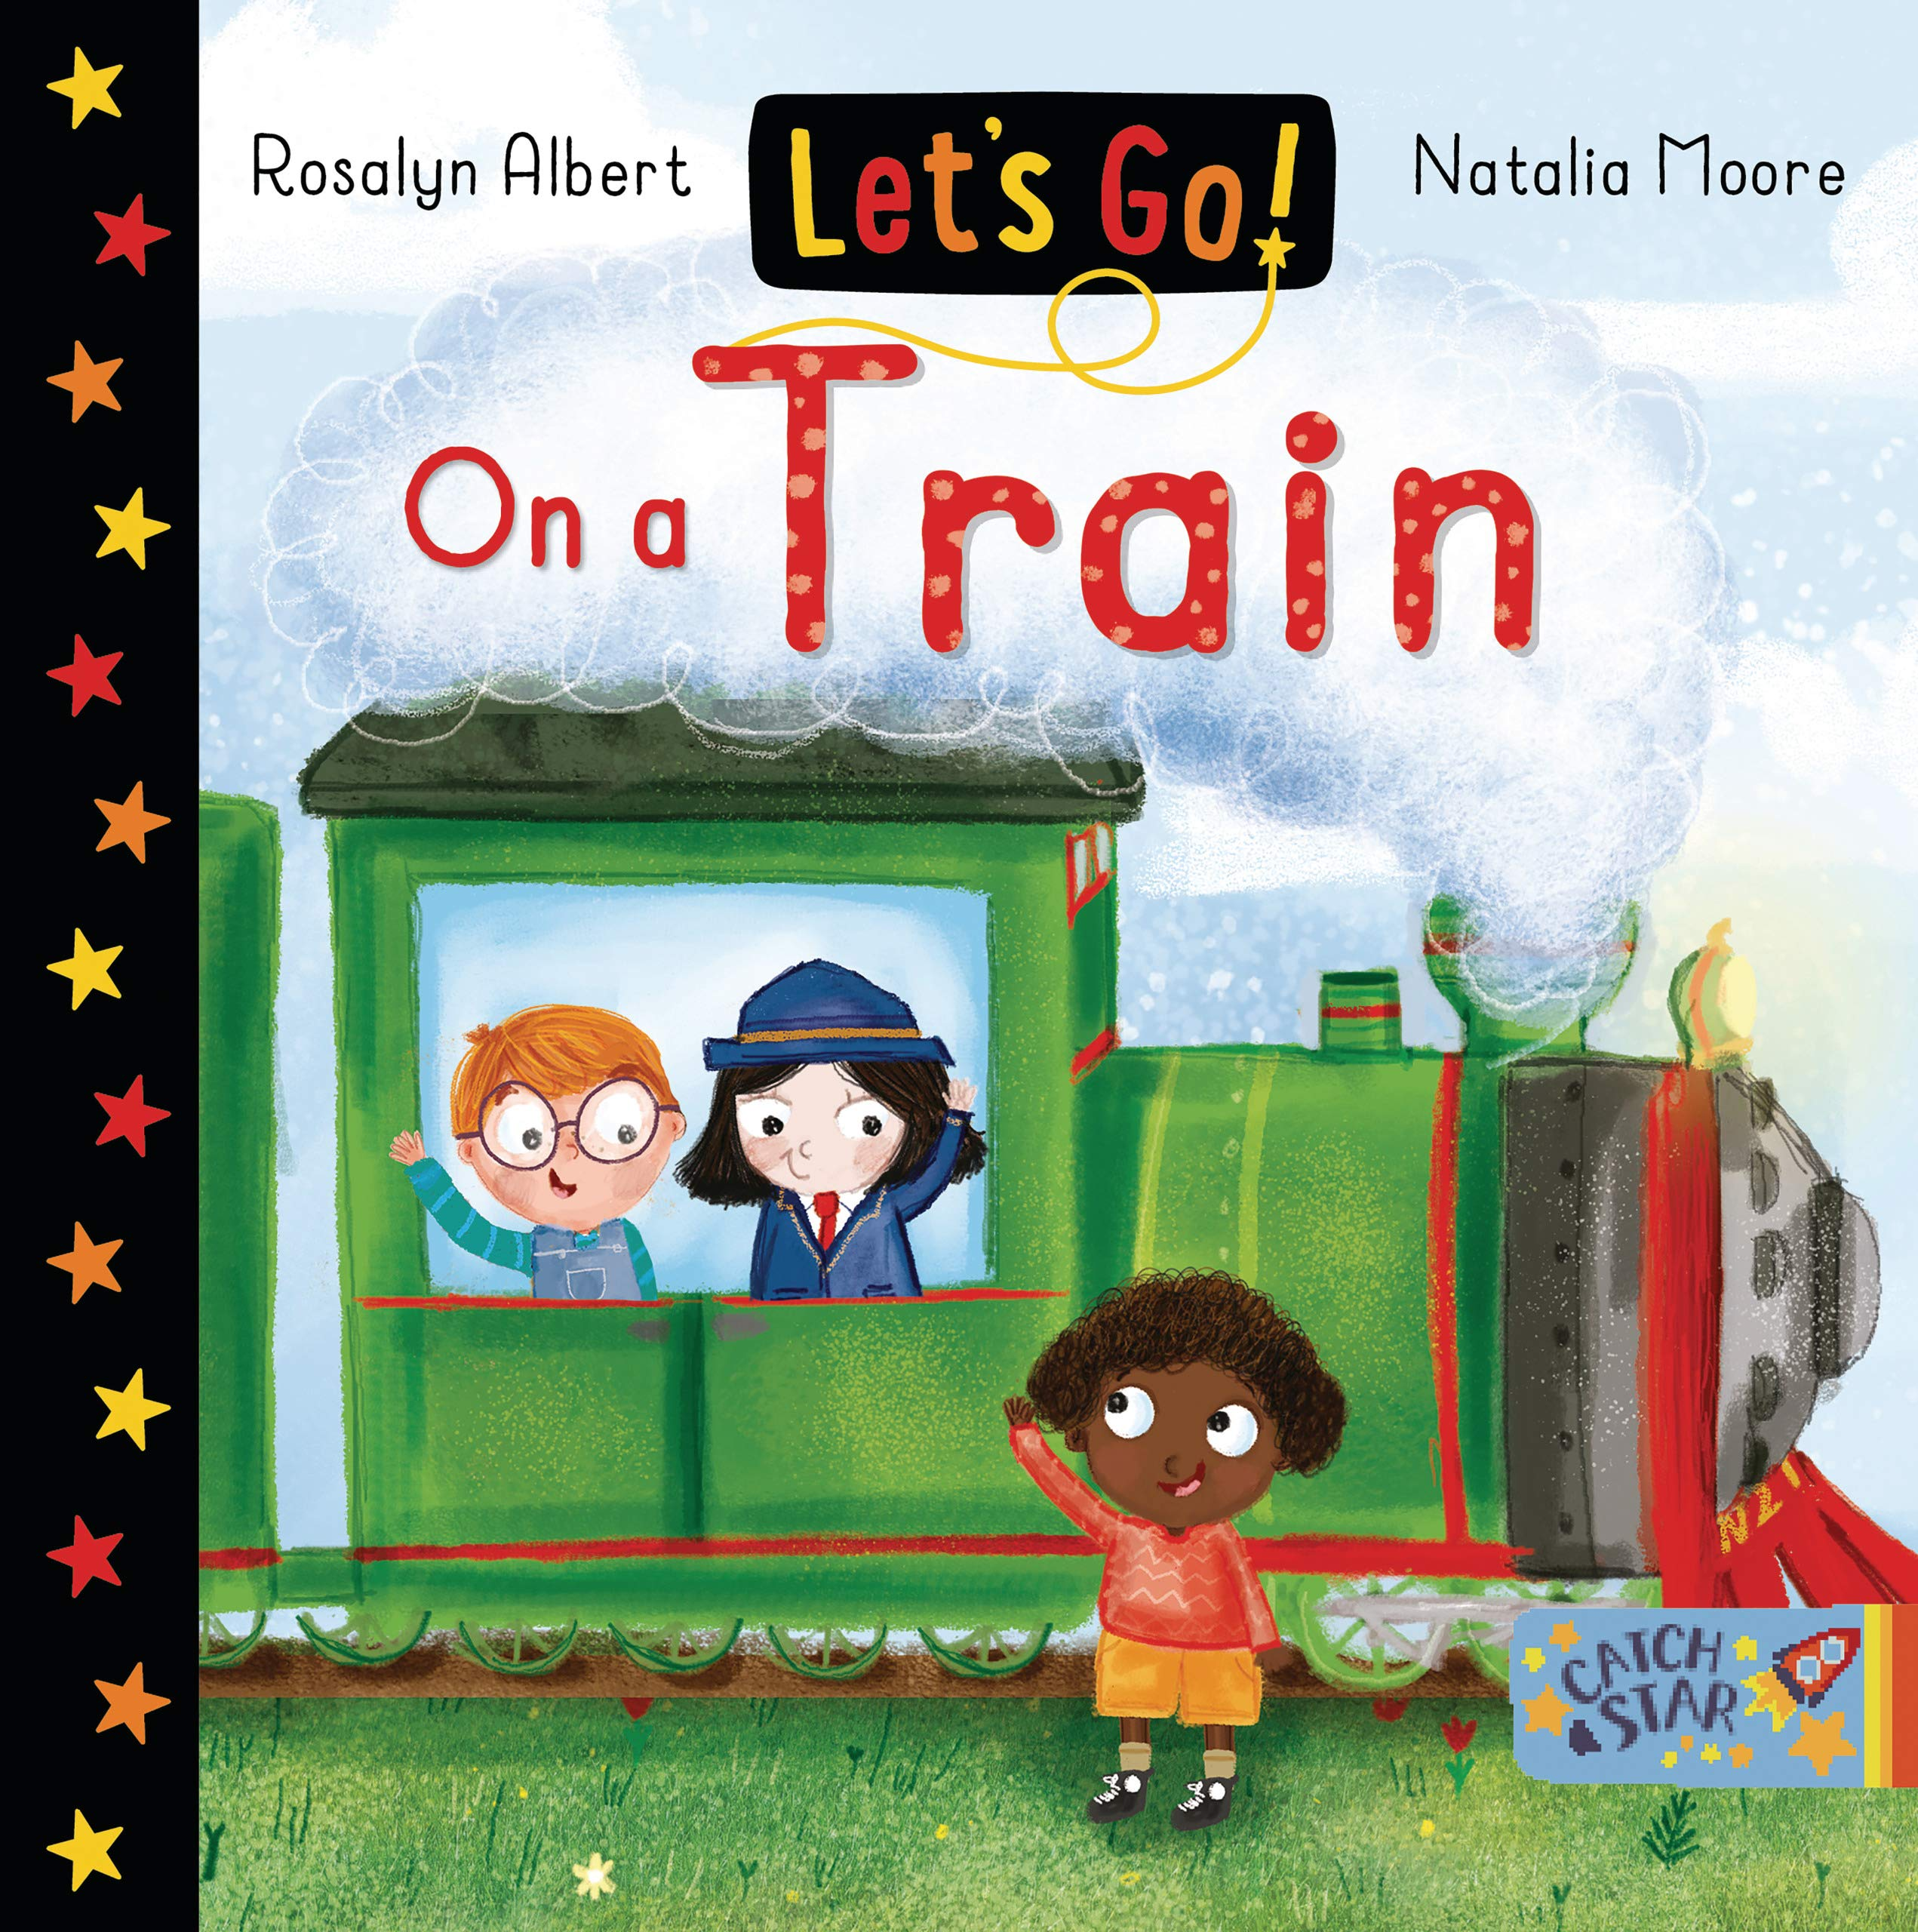 celebrate-picture-books-picture-book-review-let's-go-on-a-train-cover